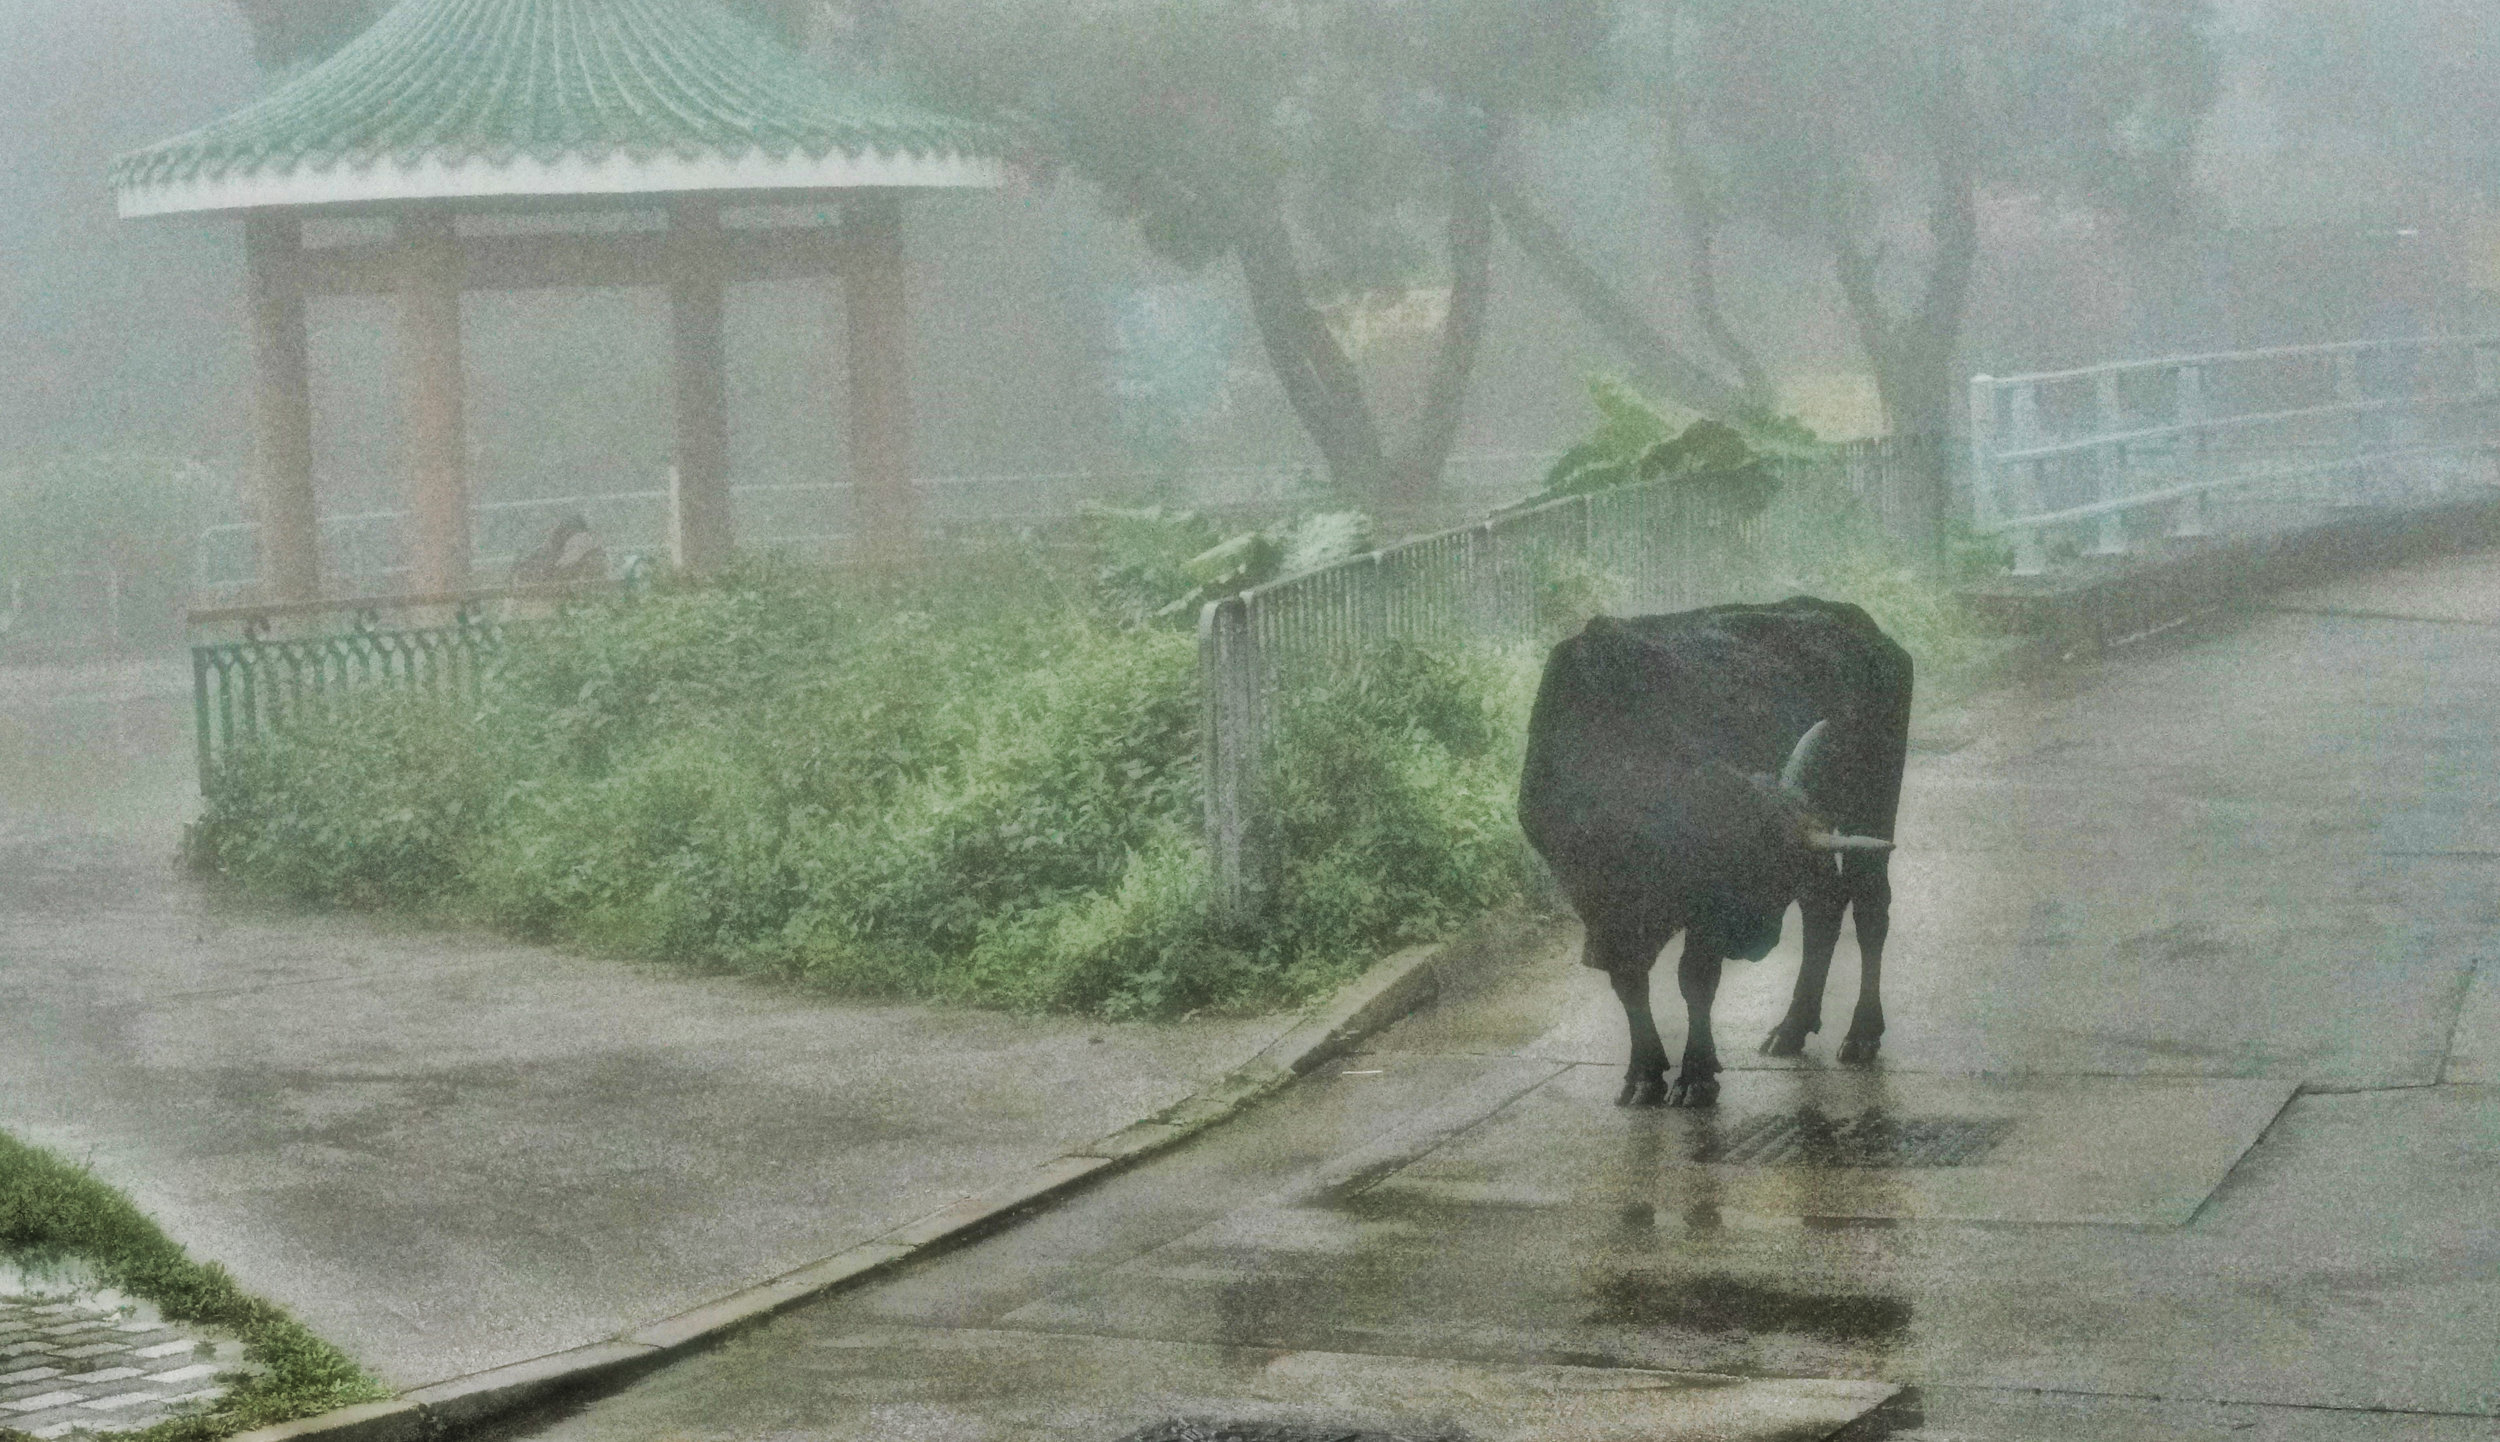 It can get quite mystical up at the Big Buddha on Lantau Island, there are days were you cannot see 2 feet in front of you and all of a sudden you are confronted by a..... cow! The cows are friendly enough mind.